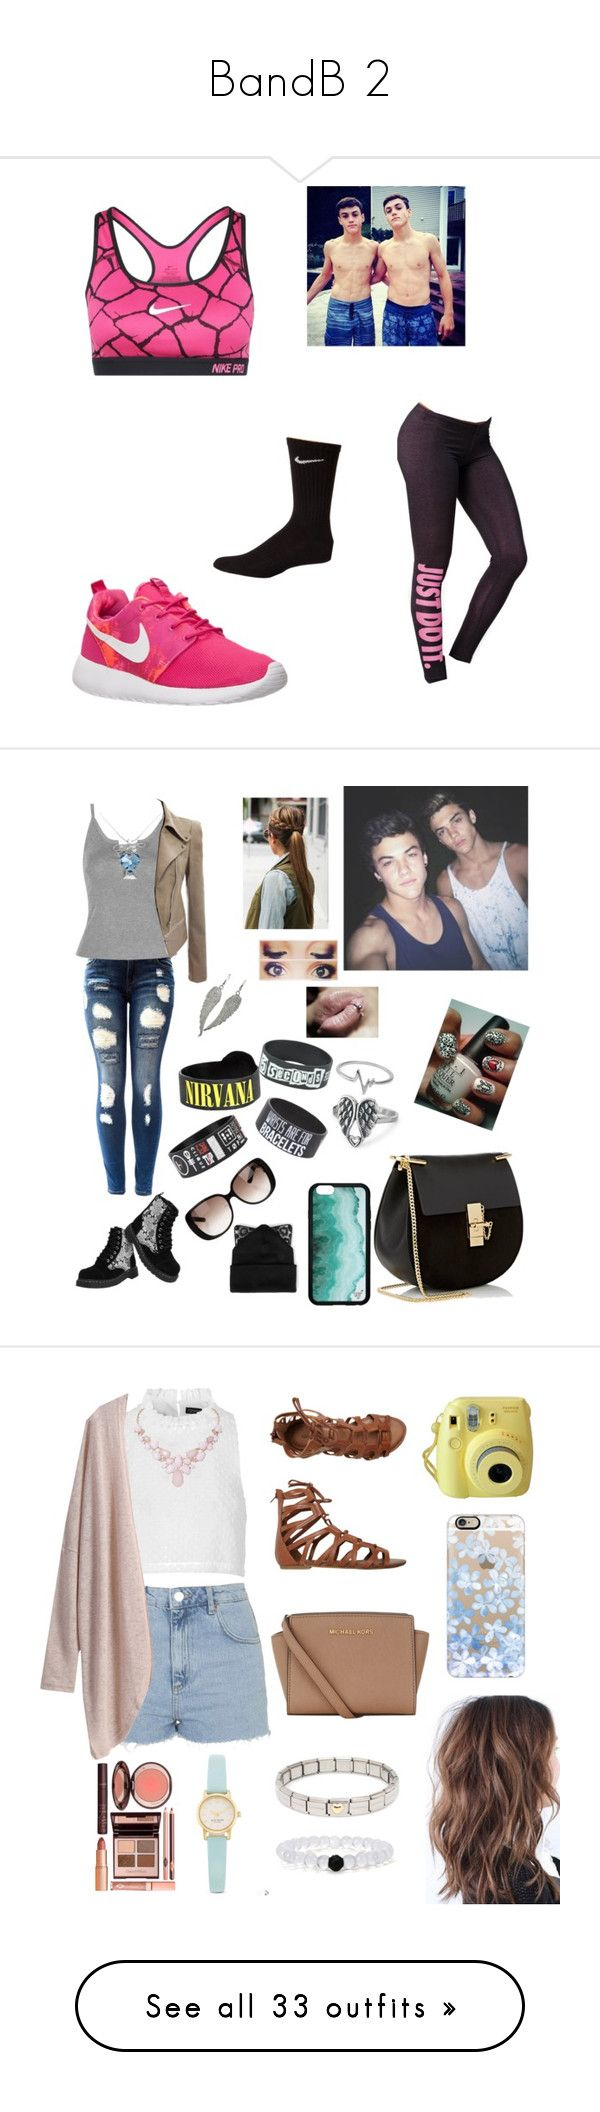 """""""BandB 2"""" by catilynhartzog ❤ liked on Polyvore featuring NIKE, Dolan, WithChic, T.U.K., Chloé, Gucci, Silver Spoon Attire, Natures Jewelry, Jewel Exclusive and Topshop"""